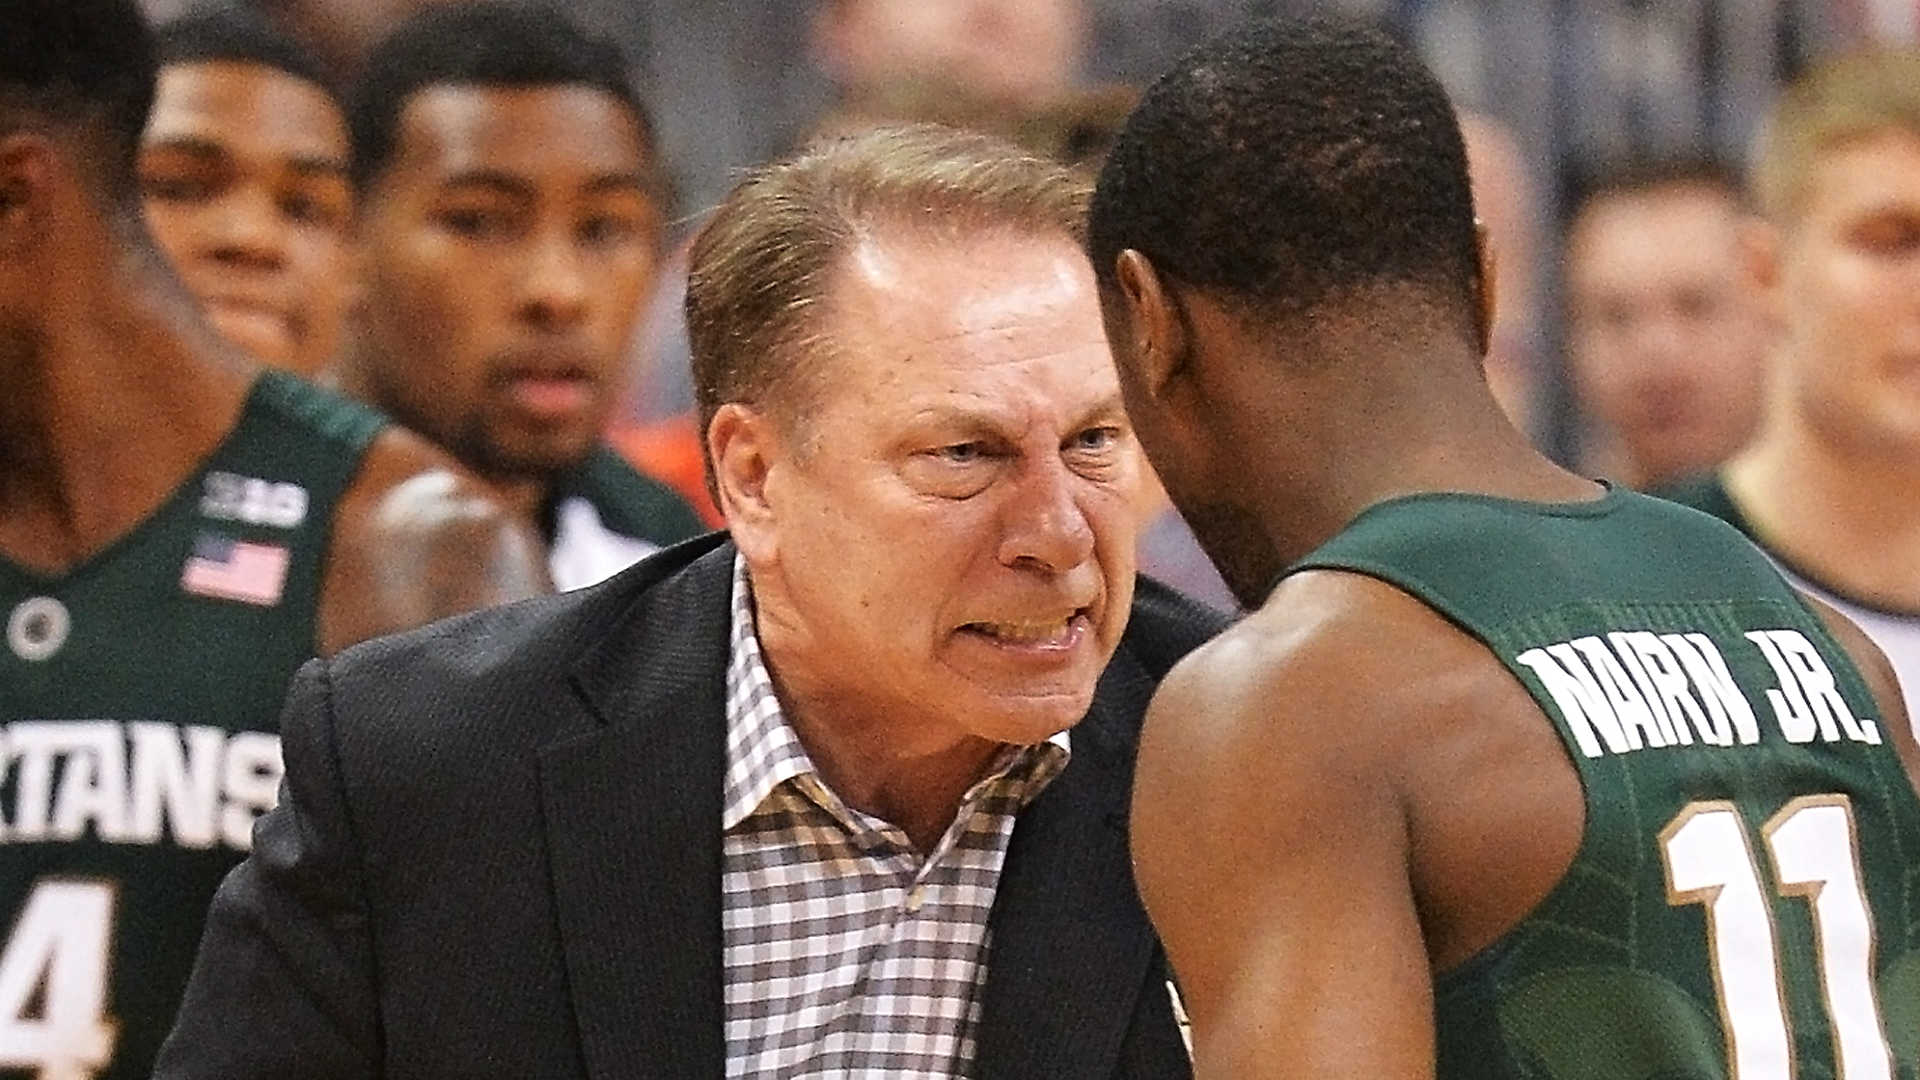 Tom-Izzo-022216-GETTY-FTR.jpg